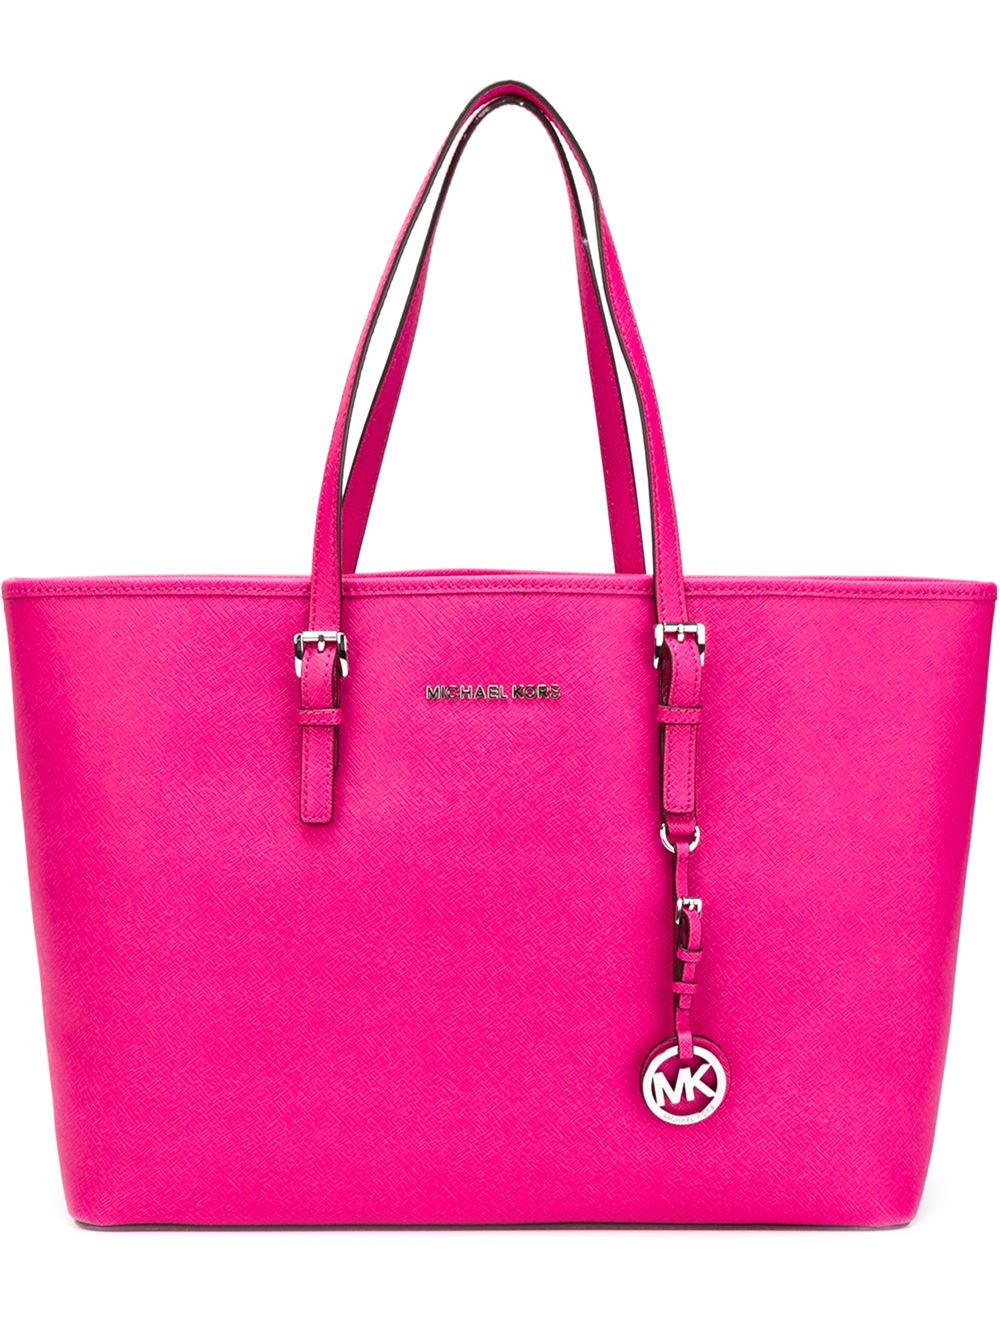 michael michael kors pink purple jet set travel tote pink product 3. Black Bedroom Furniture Sets. Home Design Ideas